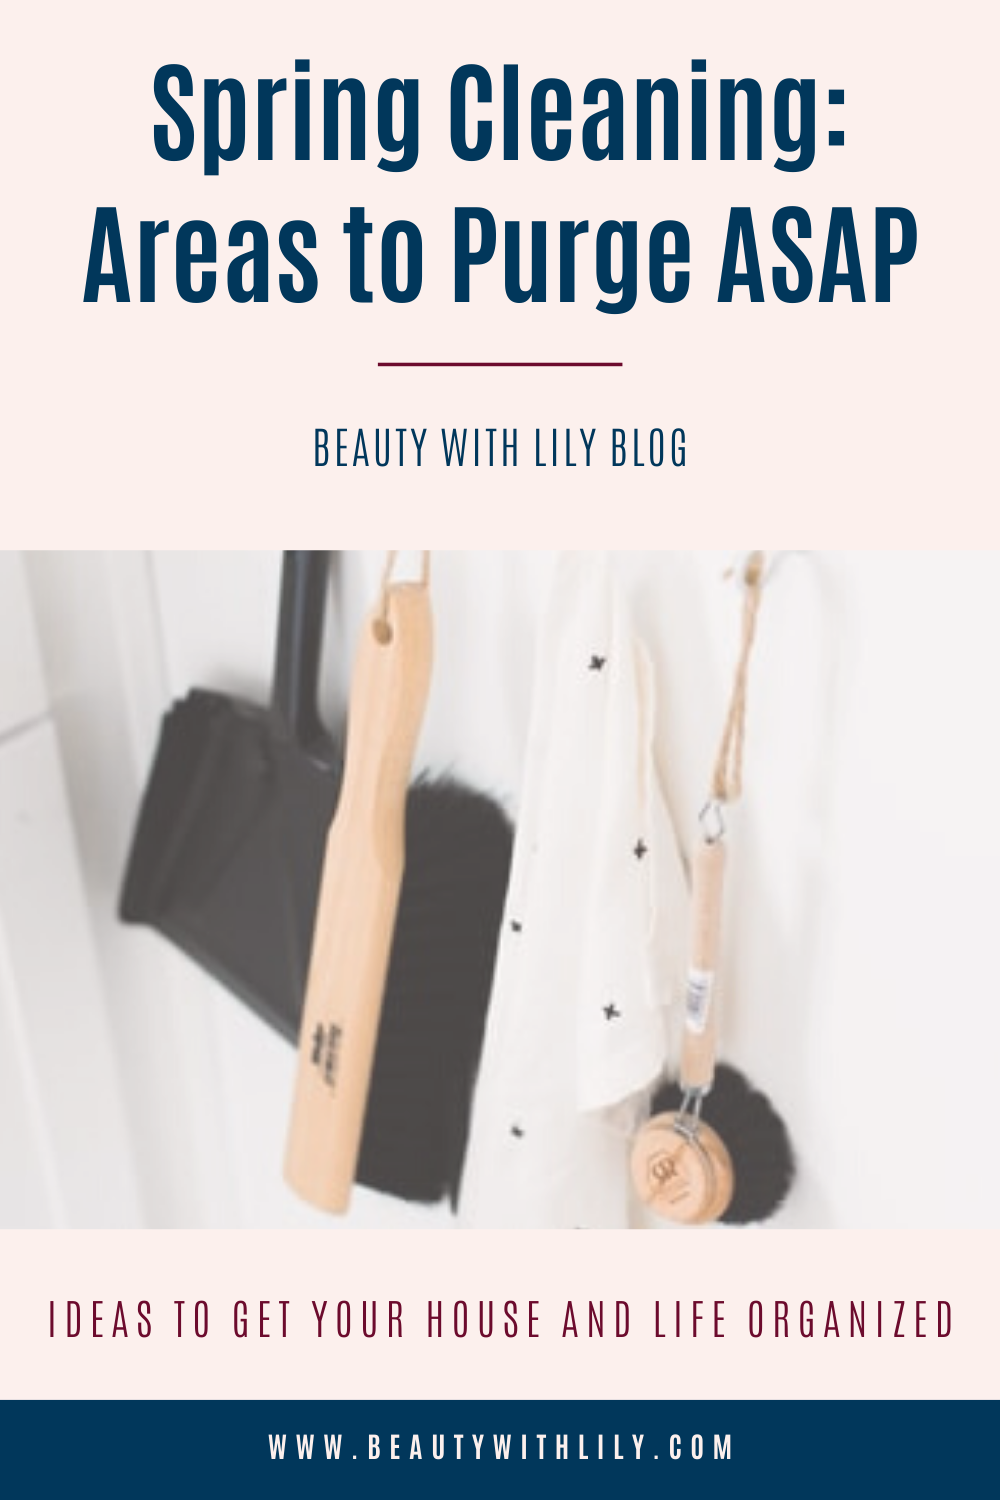 Spring Cleaning: Areas to Purge // Tips to Get Organized // How to Spring Clean // How to Purge // Tips to Spring Clean // Spring Cleaning Hacks // Spring Cleaning Checklist // Spring Cleaning Tips & Tricks // Decluttering Tips // Decluttering Ideas   Beauty With Lily #springcleaningtips #declutteringideas